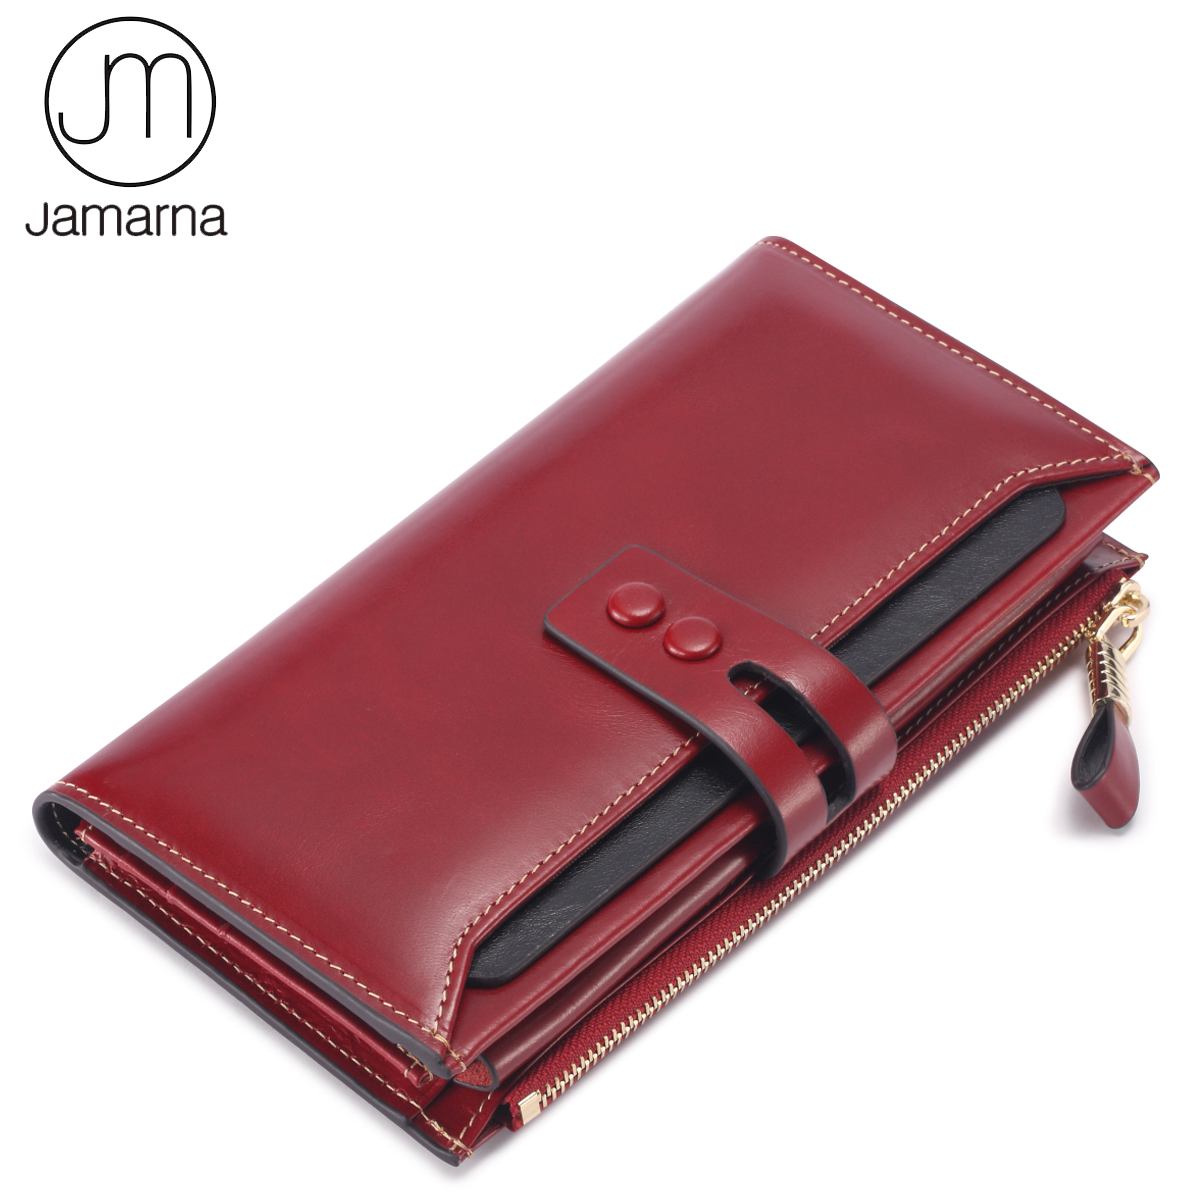 Jamarna Brand Women Wallets Genuine Leather Long Clutch Women Purse With Card Holder Phone Zipper Pocket Ladies Wallet Female jamarna brand wallet female genuine leather long clutch women purse with phone holder women wallets fashion crocodile leather